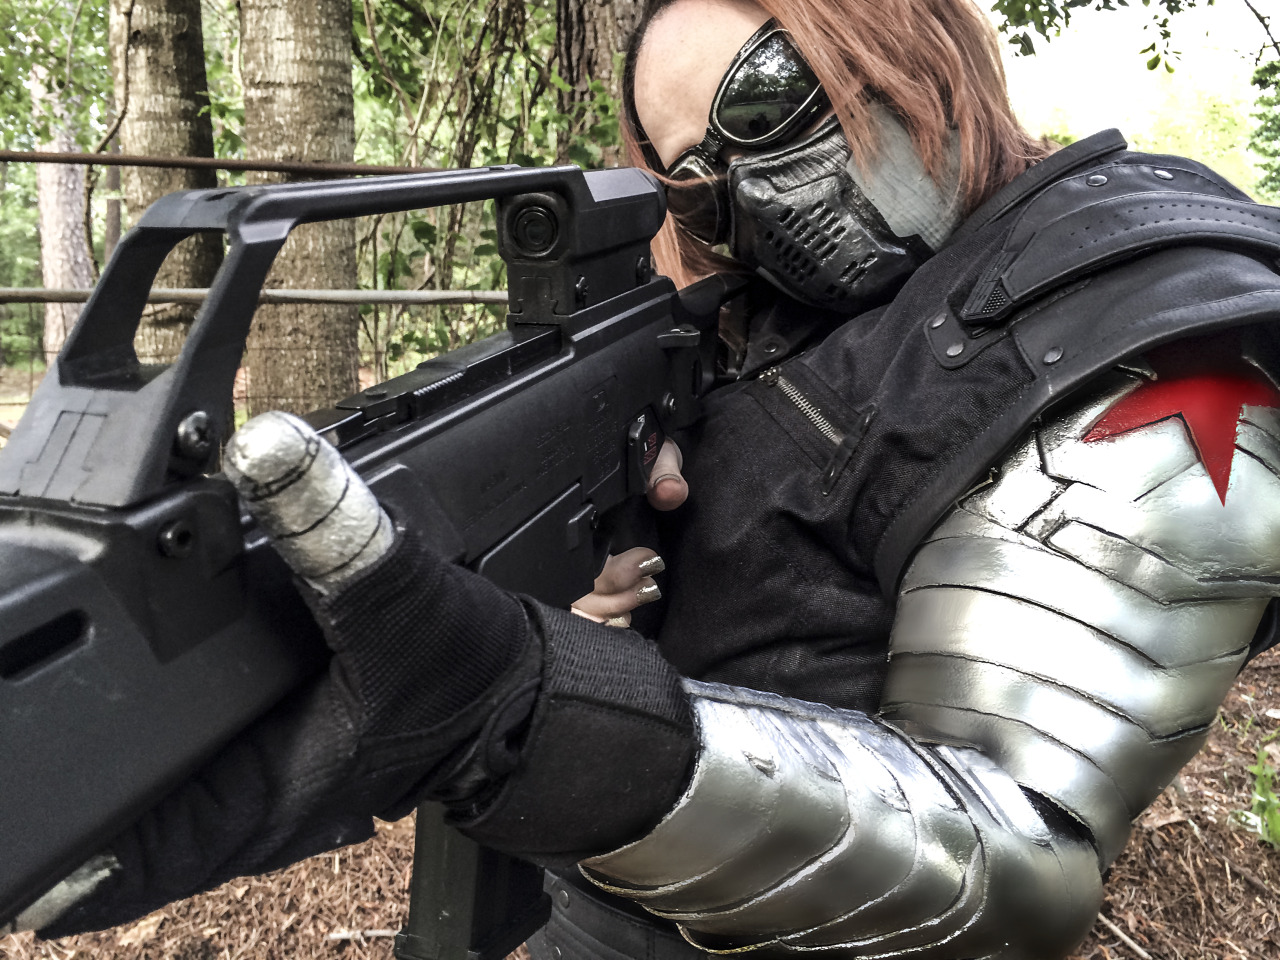 Submission Weekend! Winter SoldierfromCaptain America: The Winter Soldier  Cosplayer / Submitter: Kitty Barnes